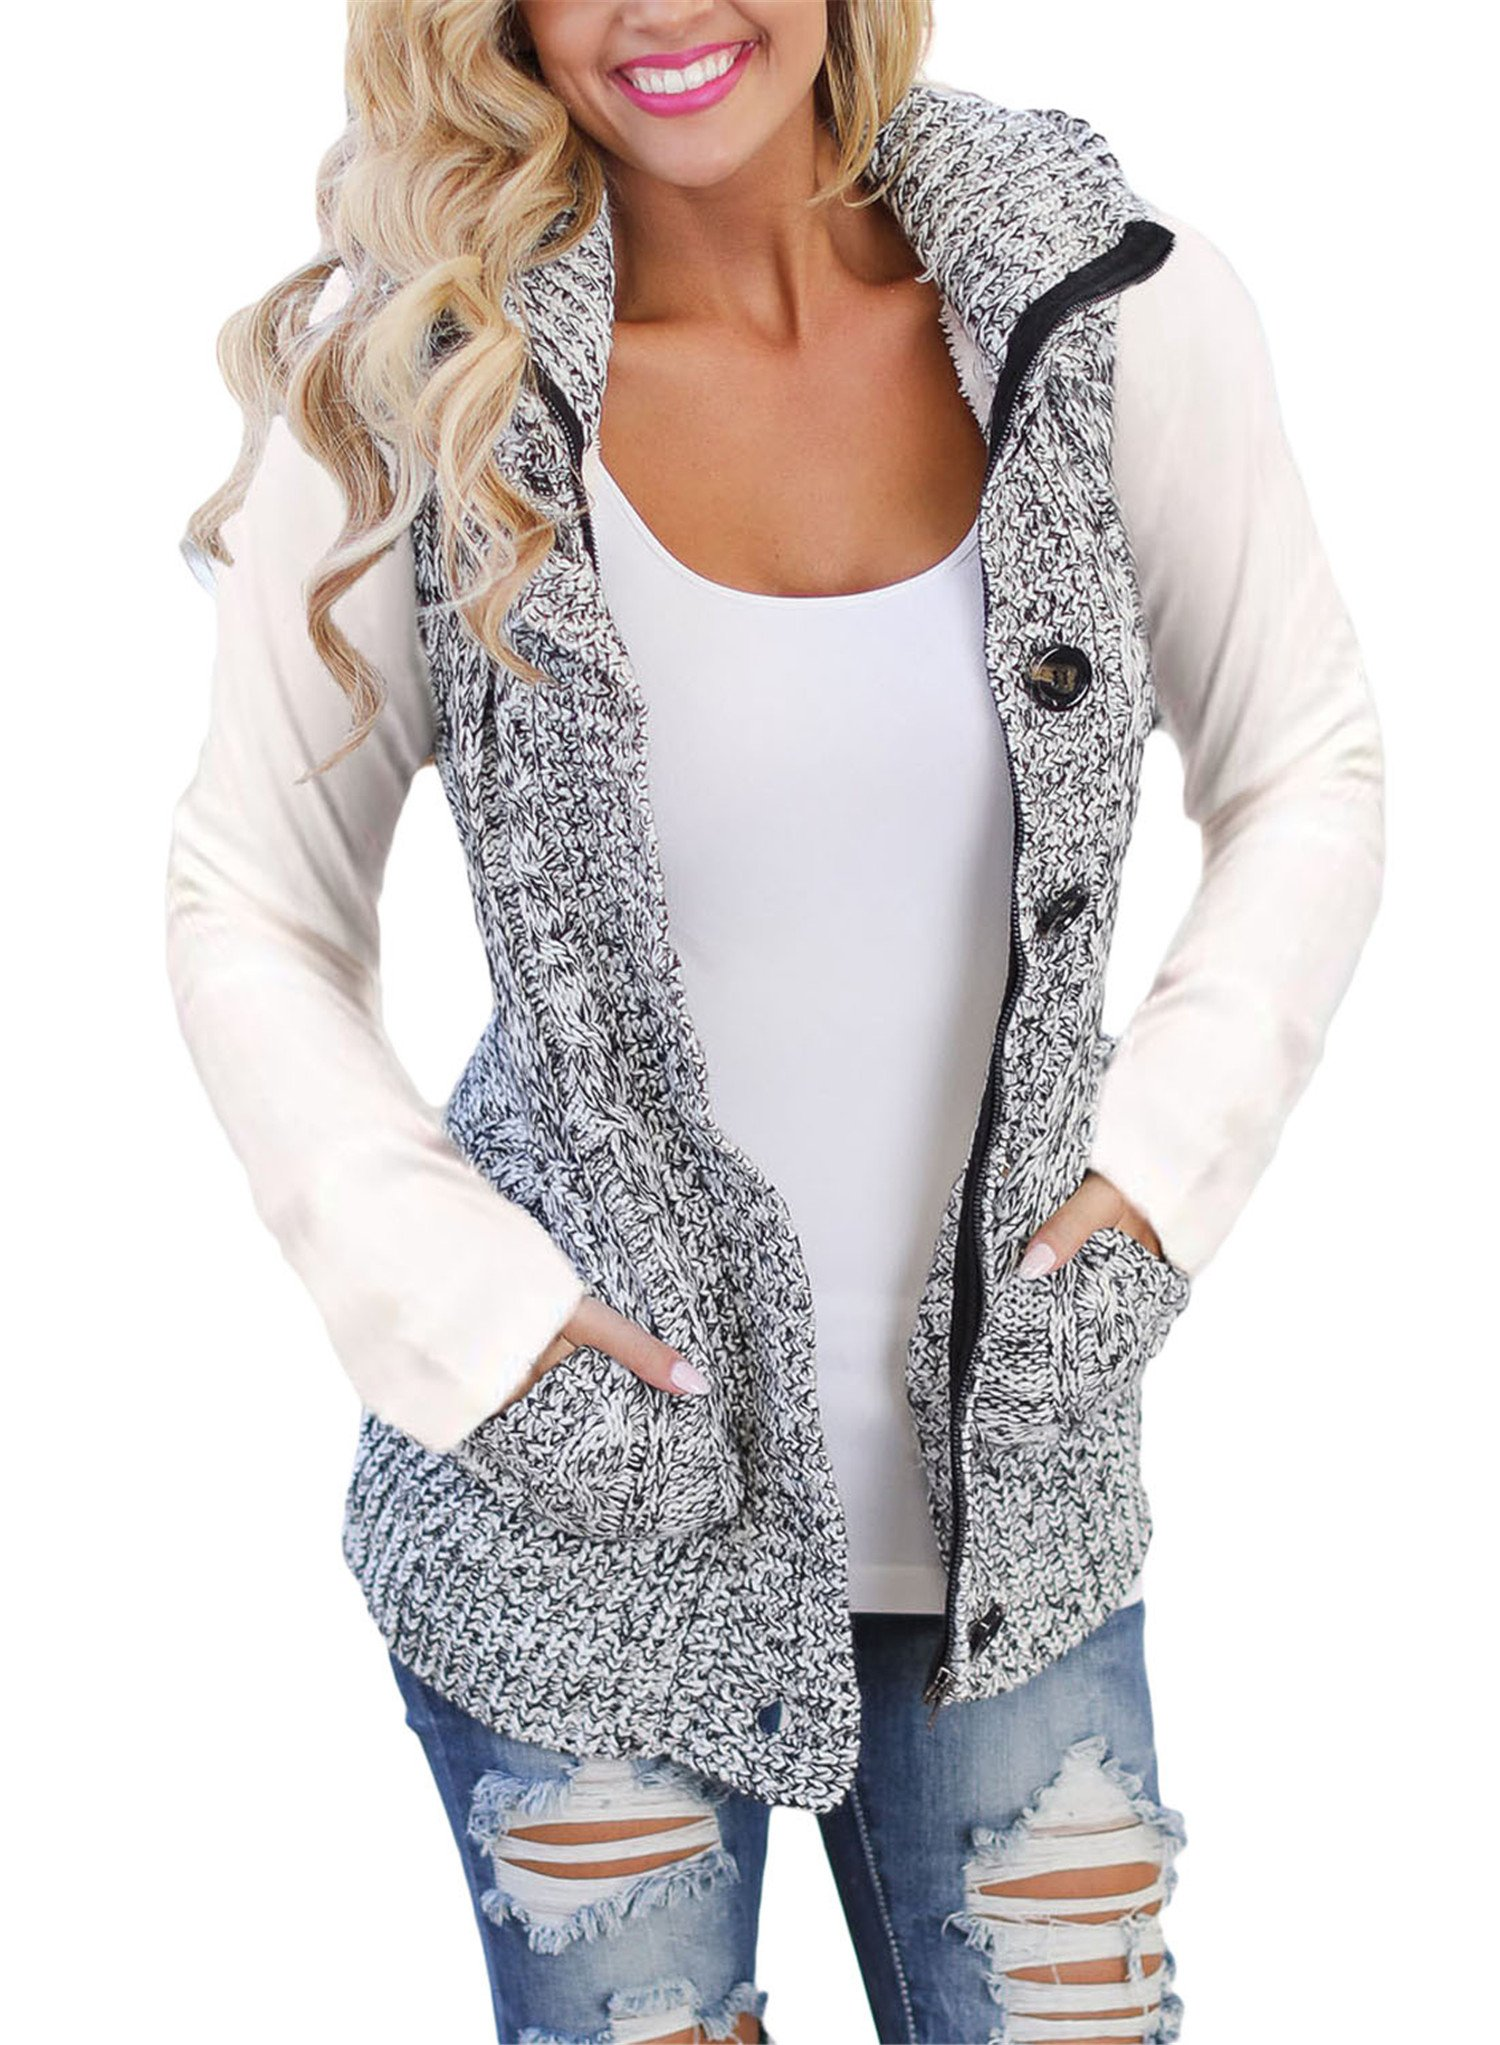 Blibea Womens Fashion Hoodies Sweater Vest Button-up Cable Knit Sleeveless Cardigan Coats Outerwear with Pockets Medium Grey